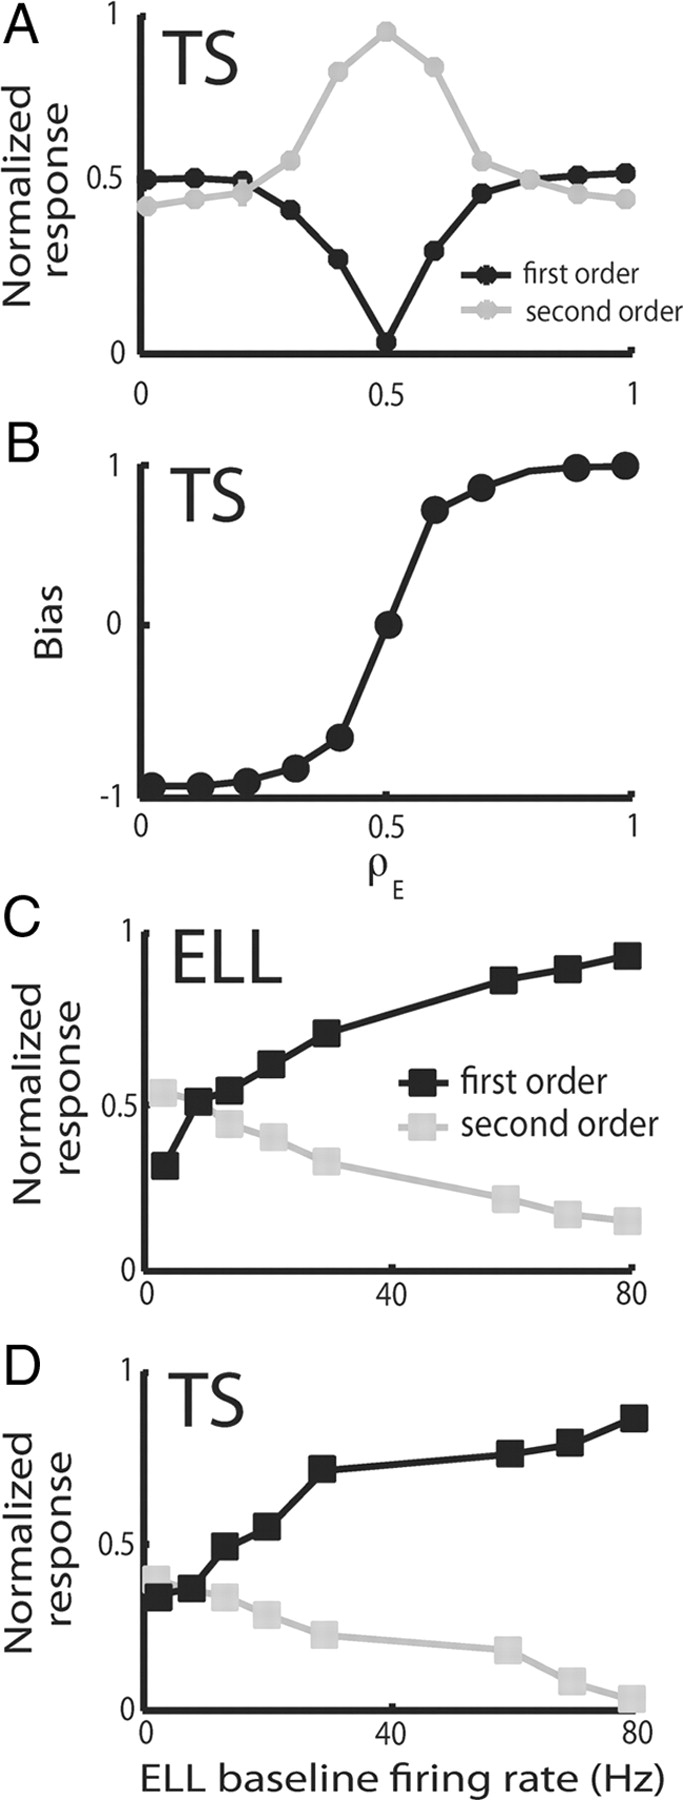 Parallel Coding of First- and Second-Order Stimulus